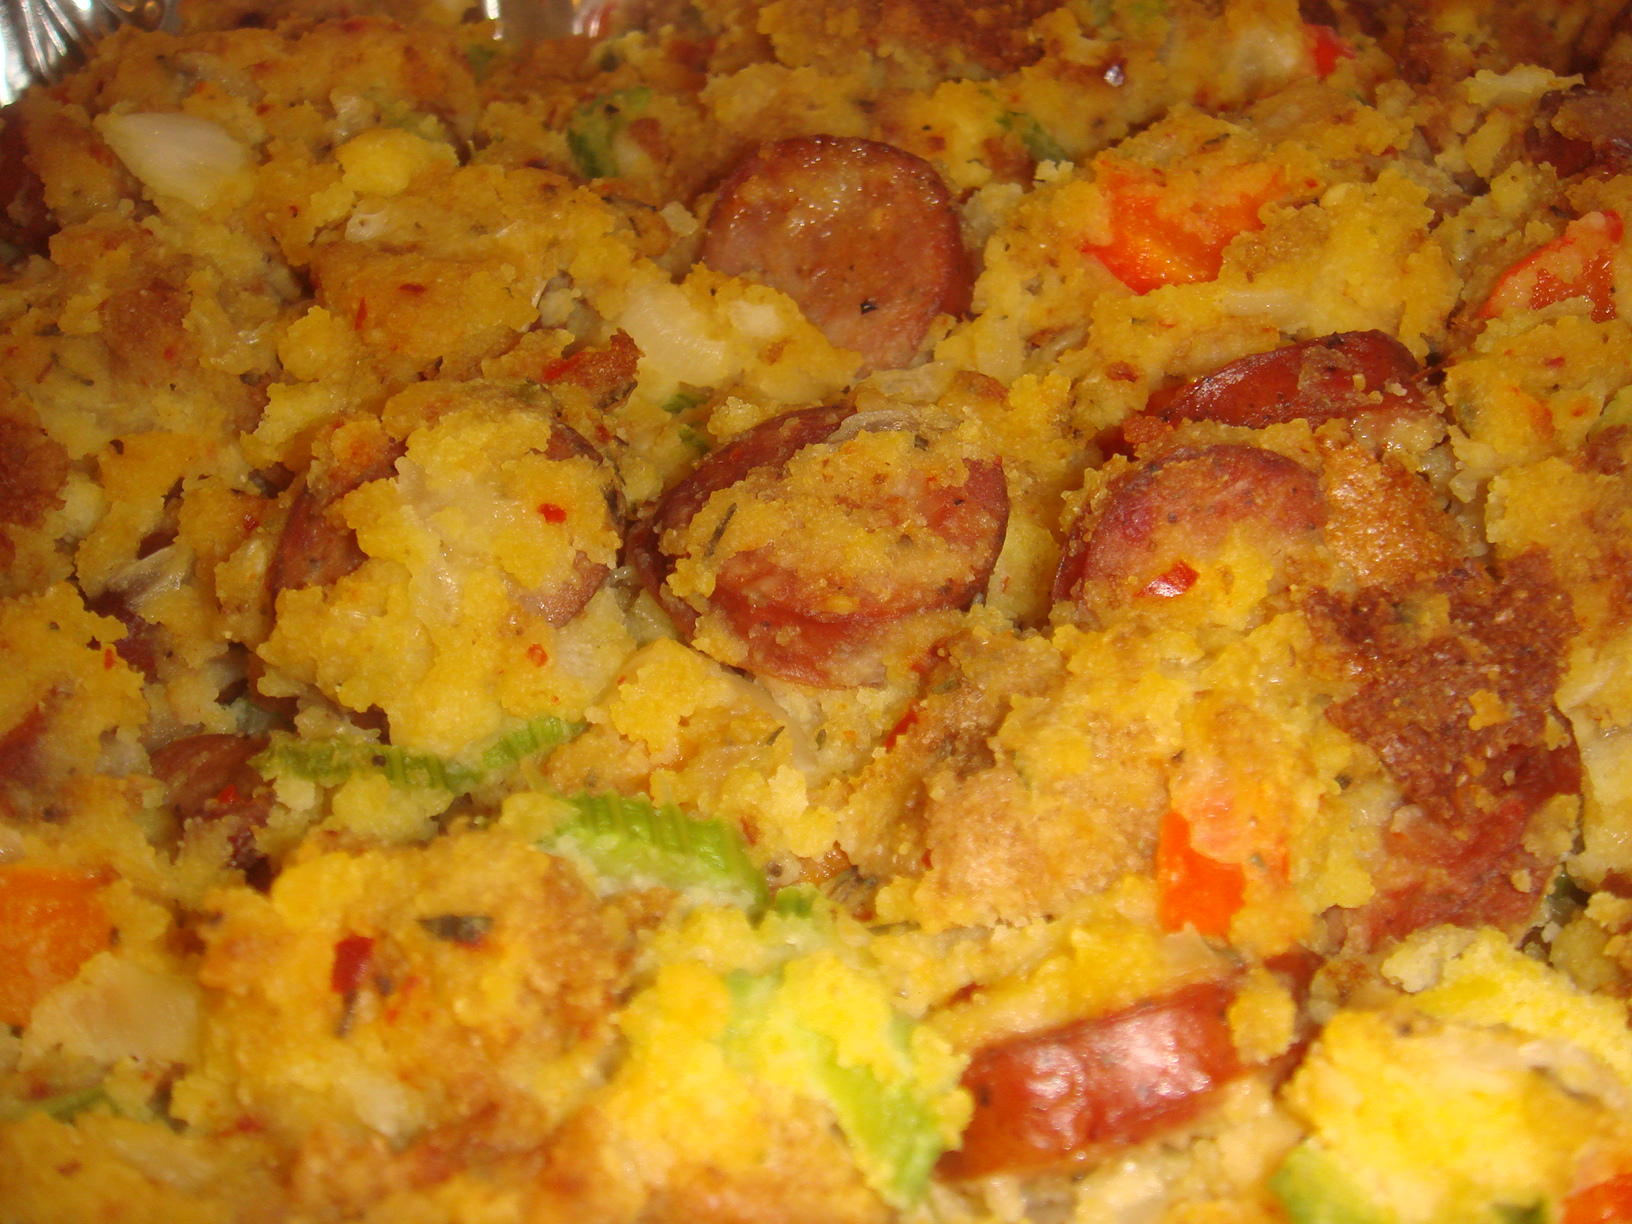 GOLDEN CORNBREAD AND CAJUN ANDOUILLE SAUSAGE STUFFING |